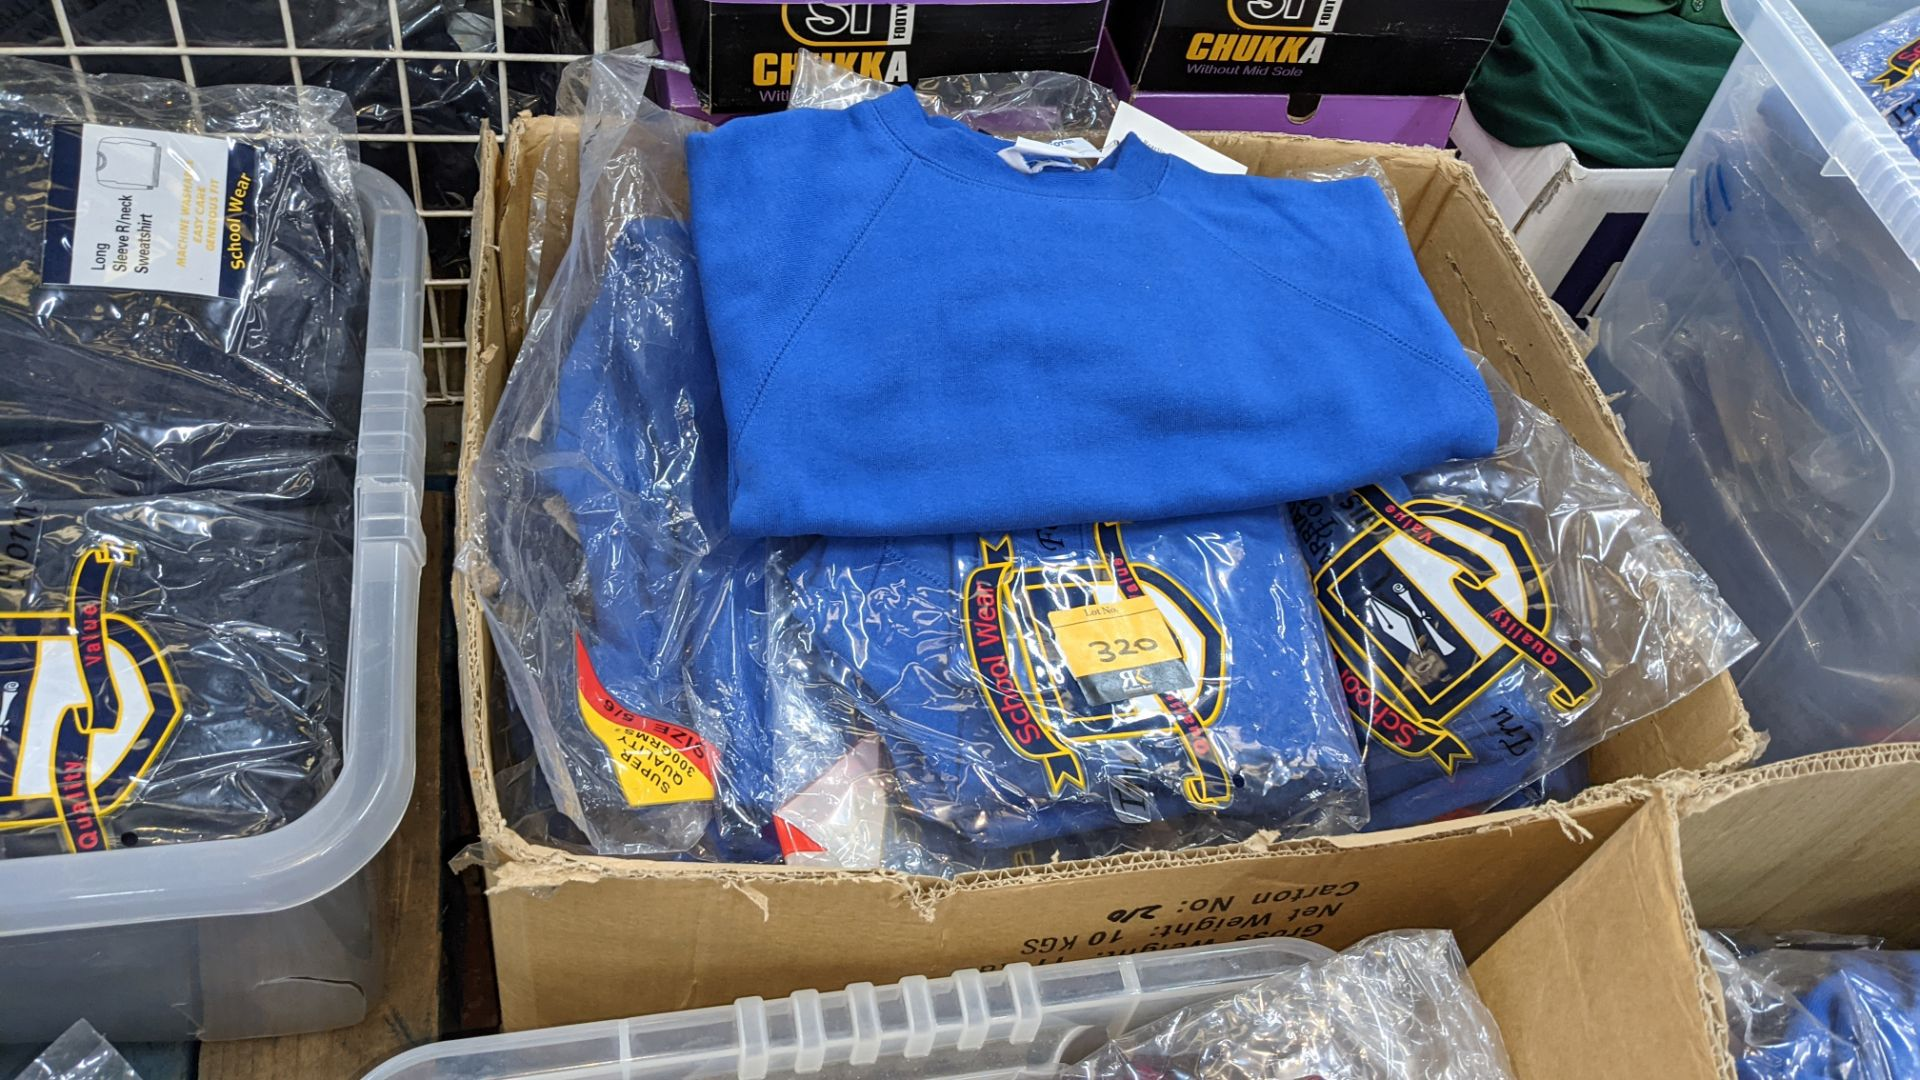 Approx 25 off blue children's sweatshirts & similar - the contents of 1 box